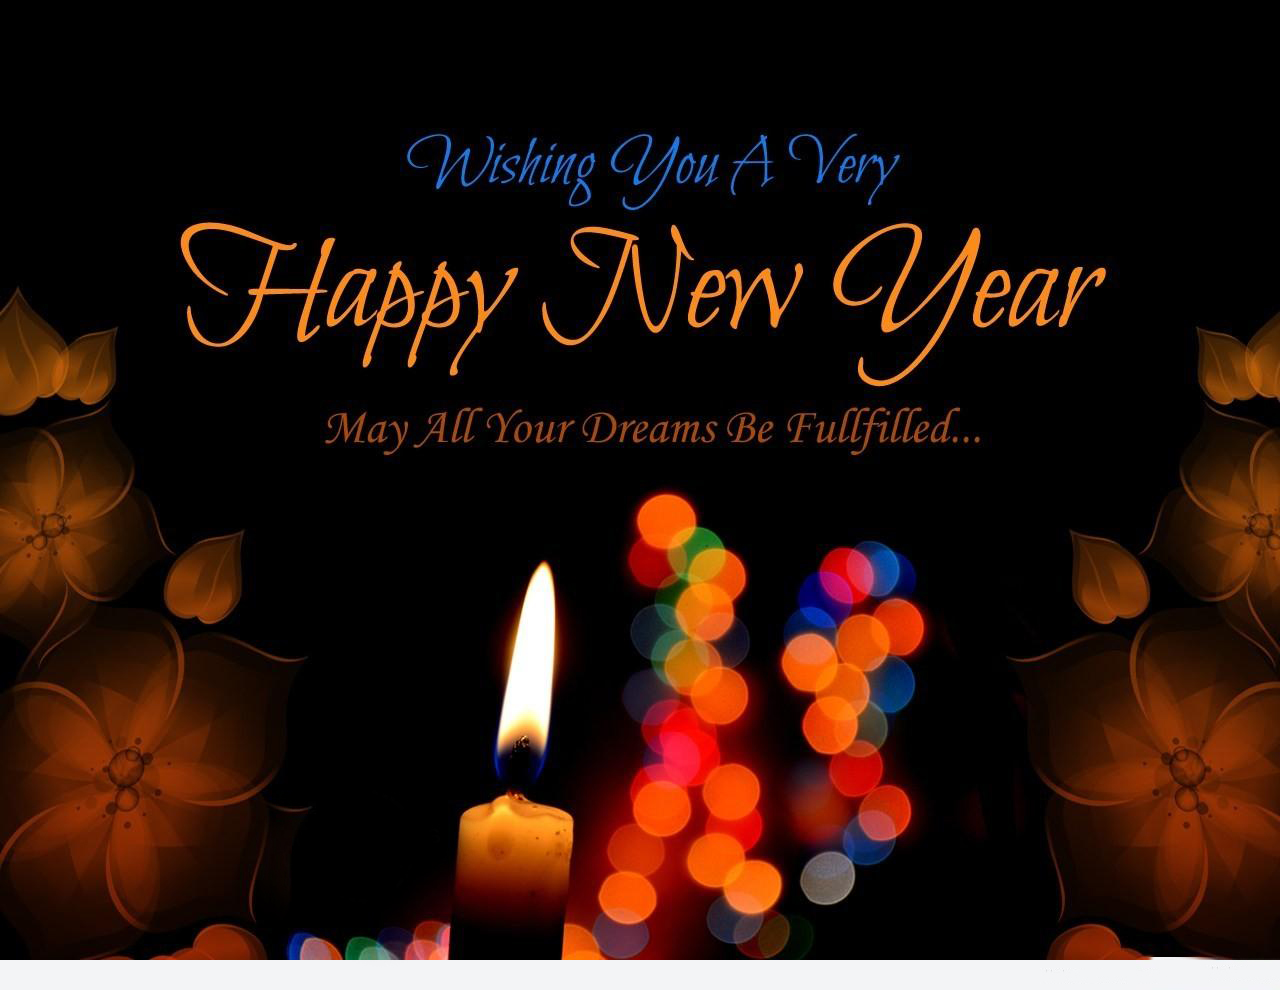 hd nice happy new year images download